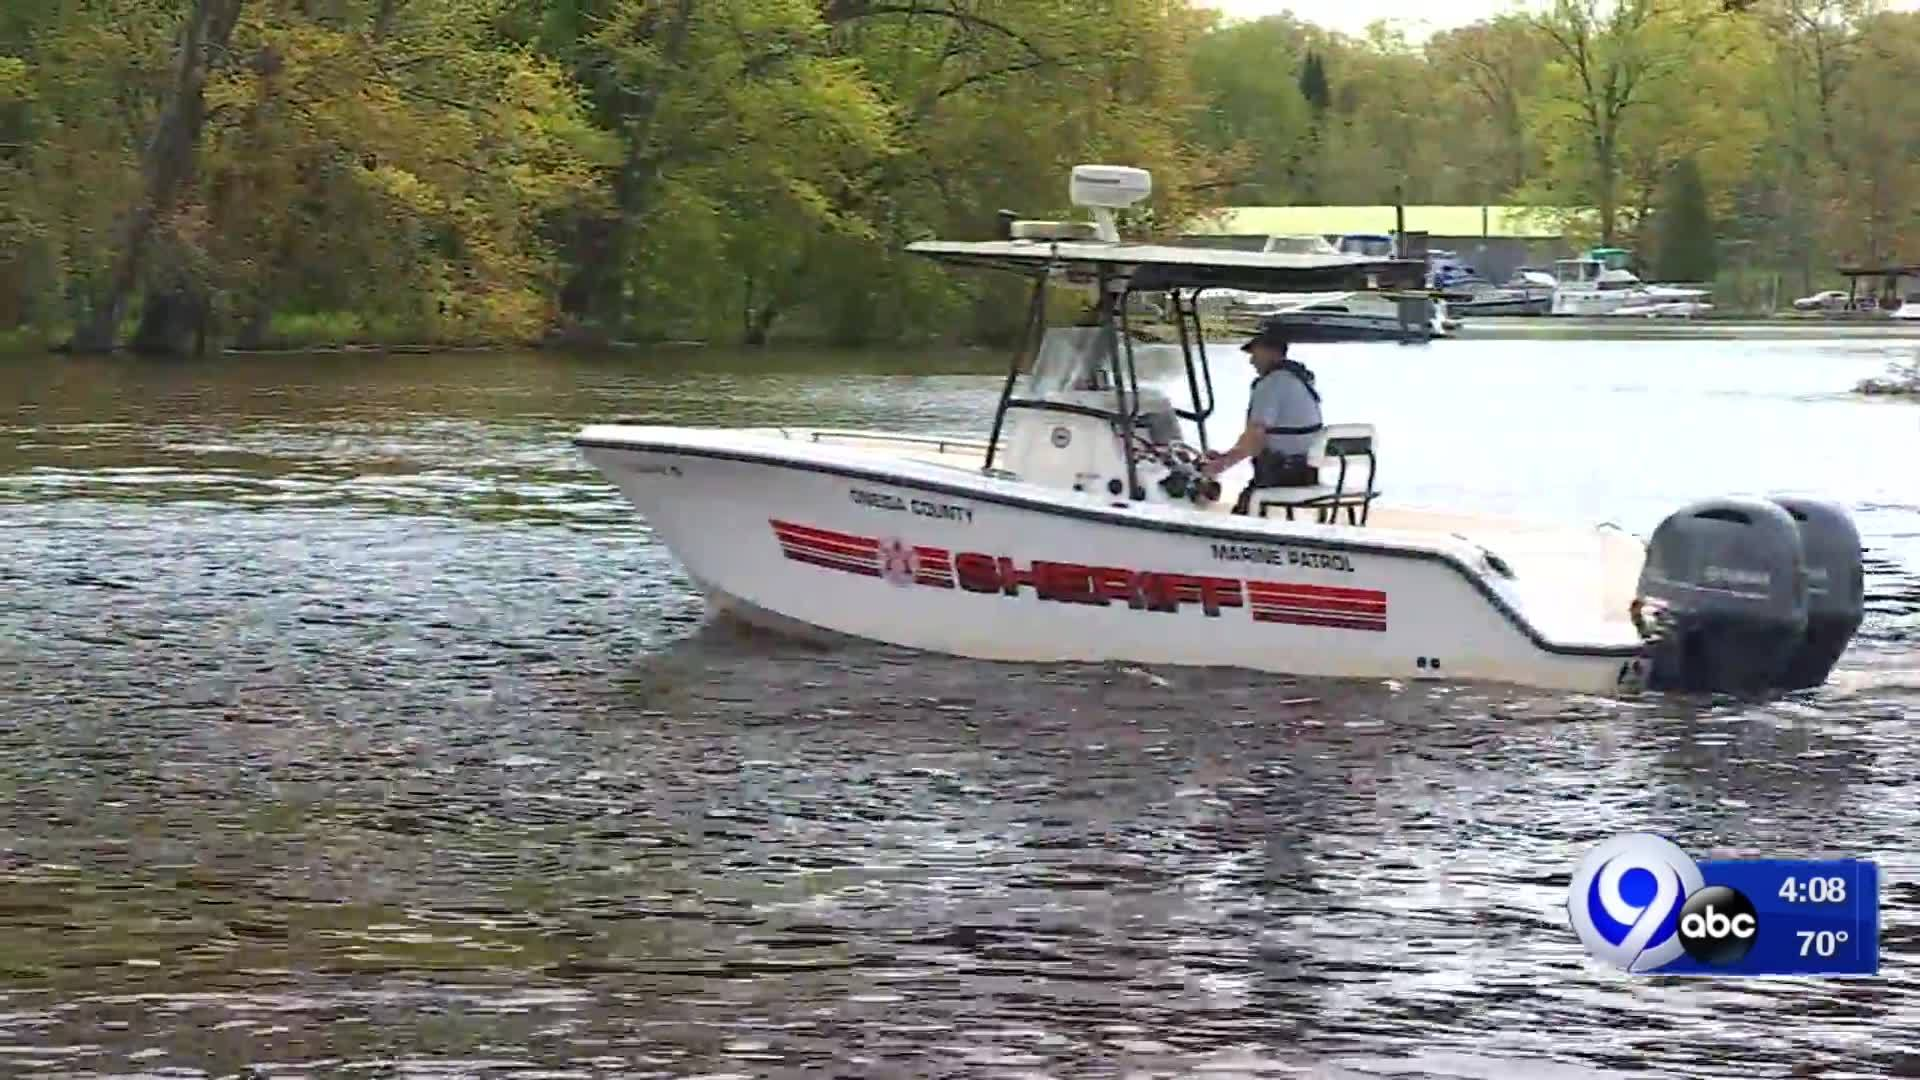 Police_agencies_remind_boaters__drivers__4_20190522201422